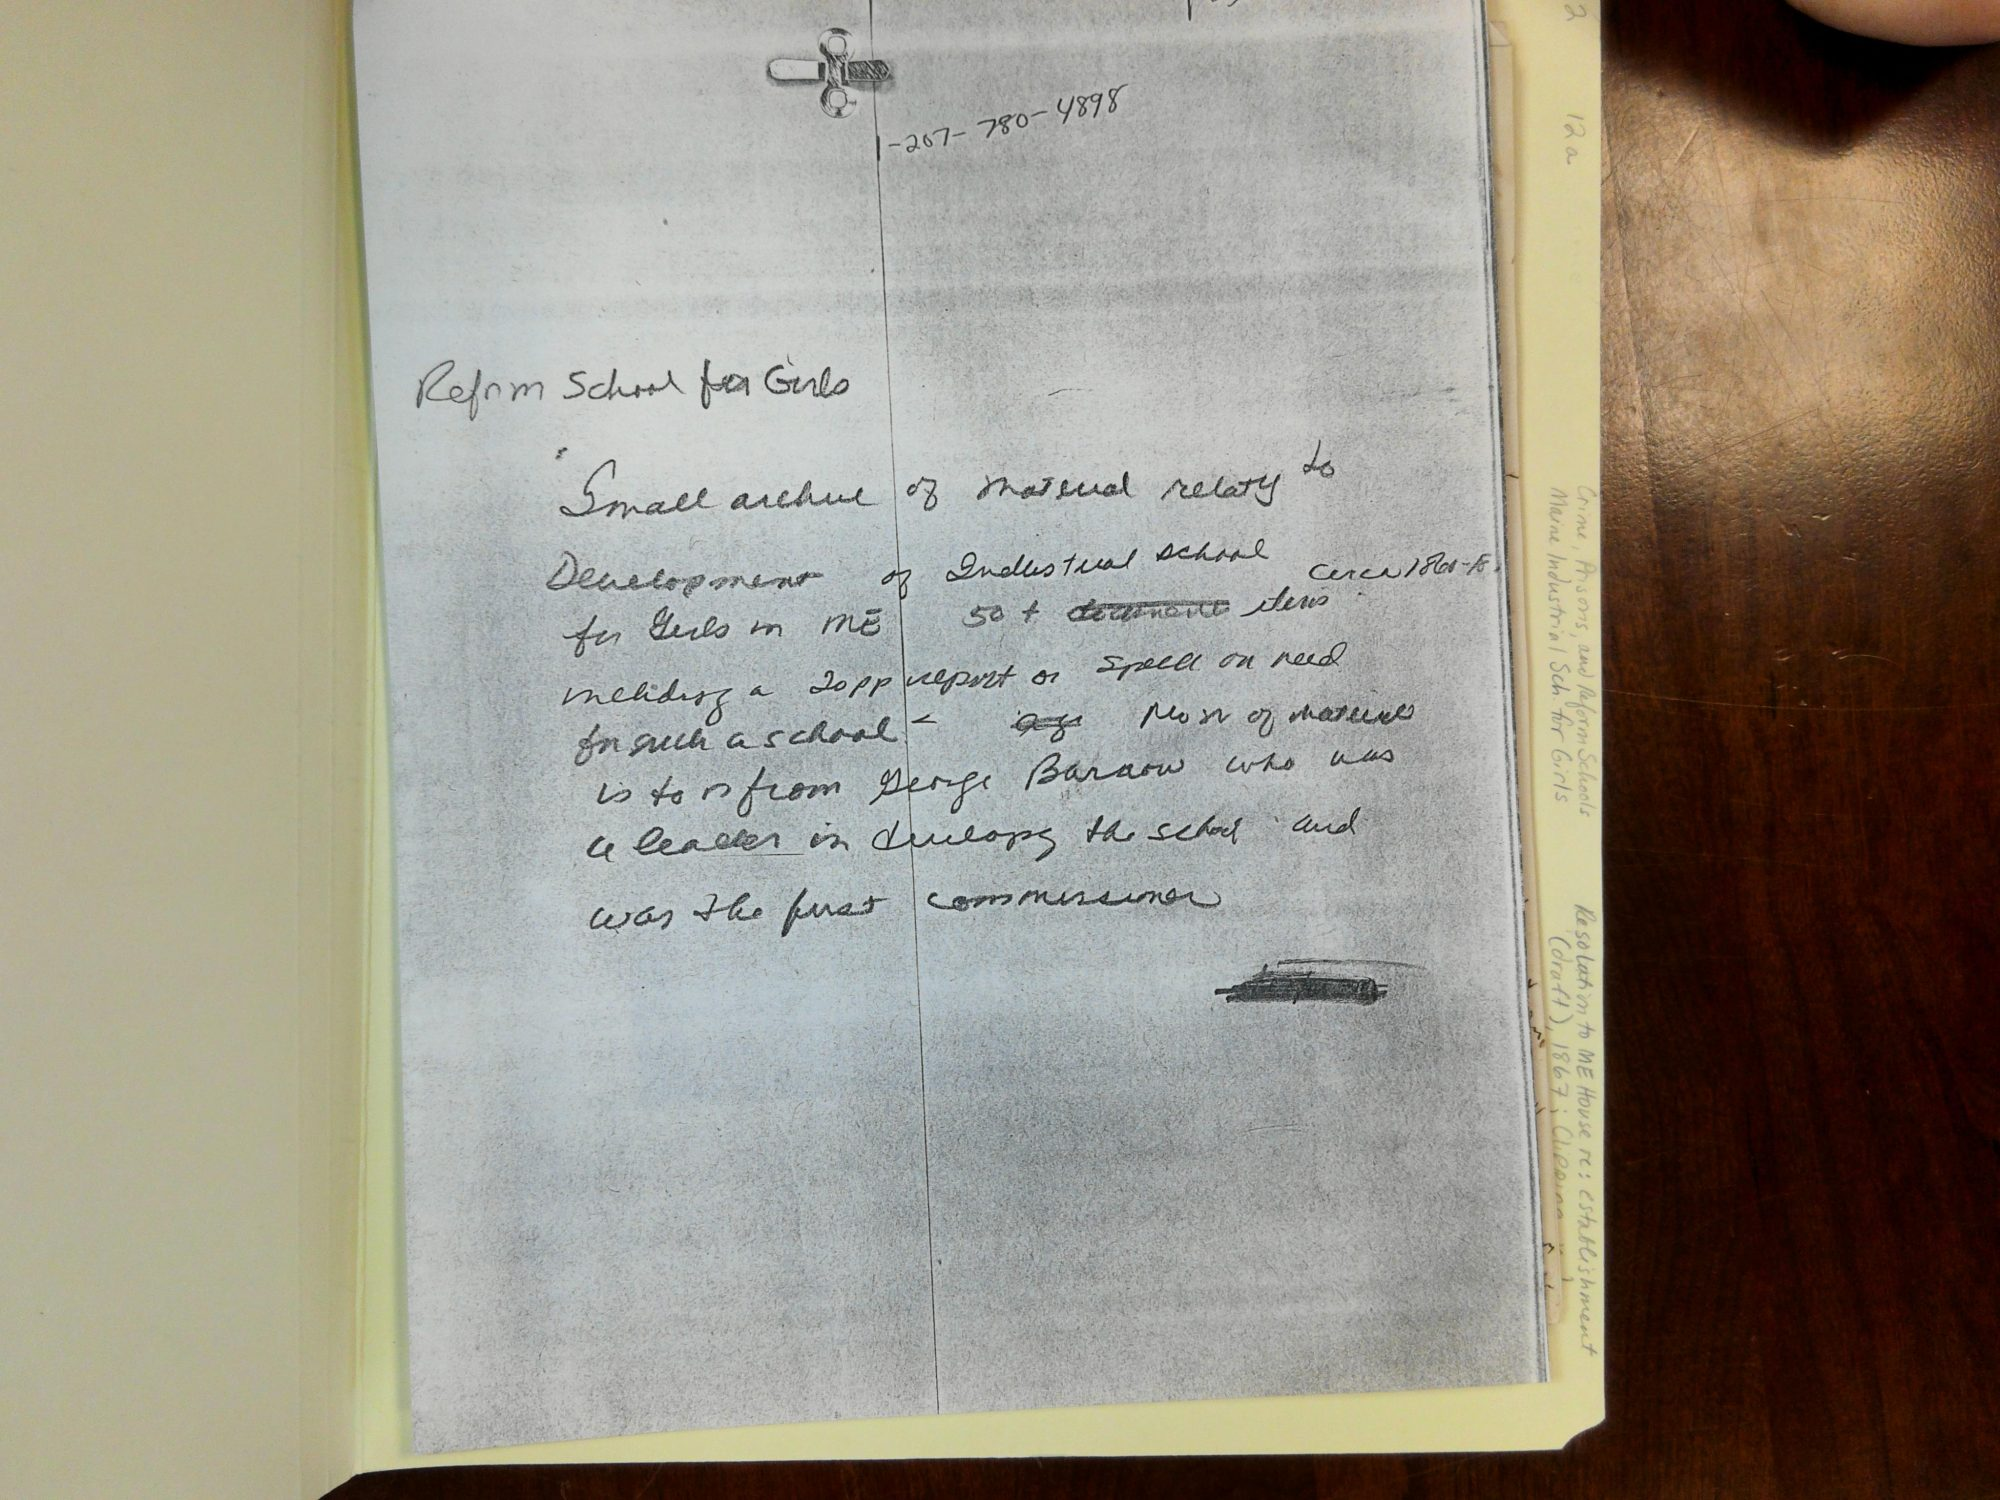 Photocopied image of handwritten text.